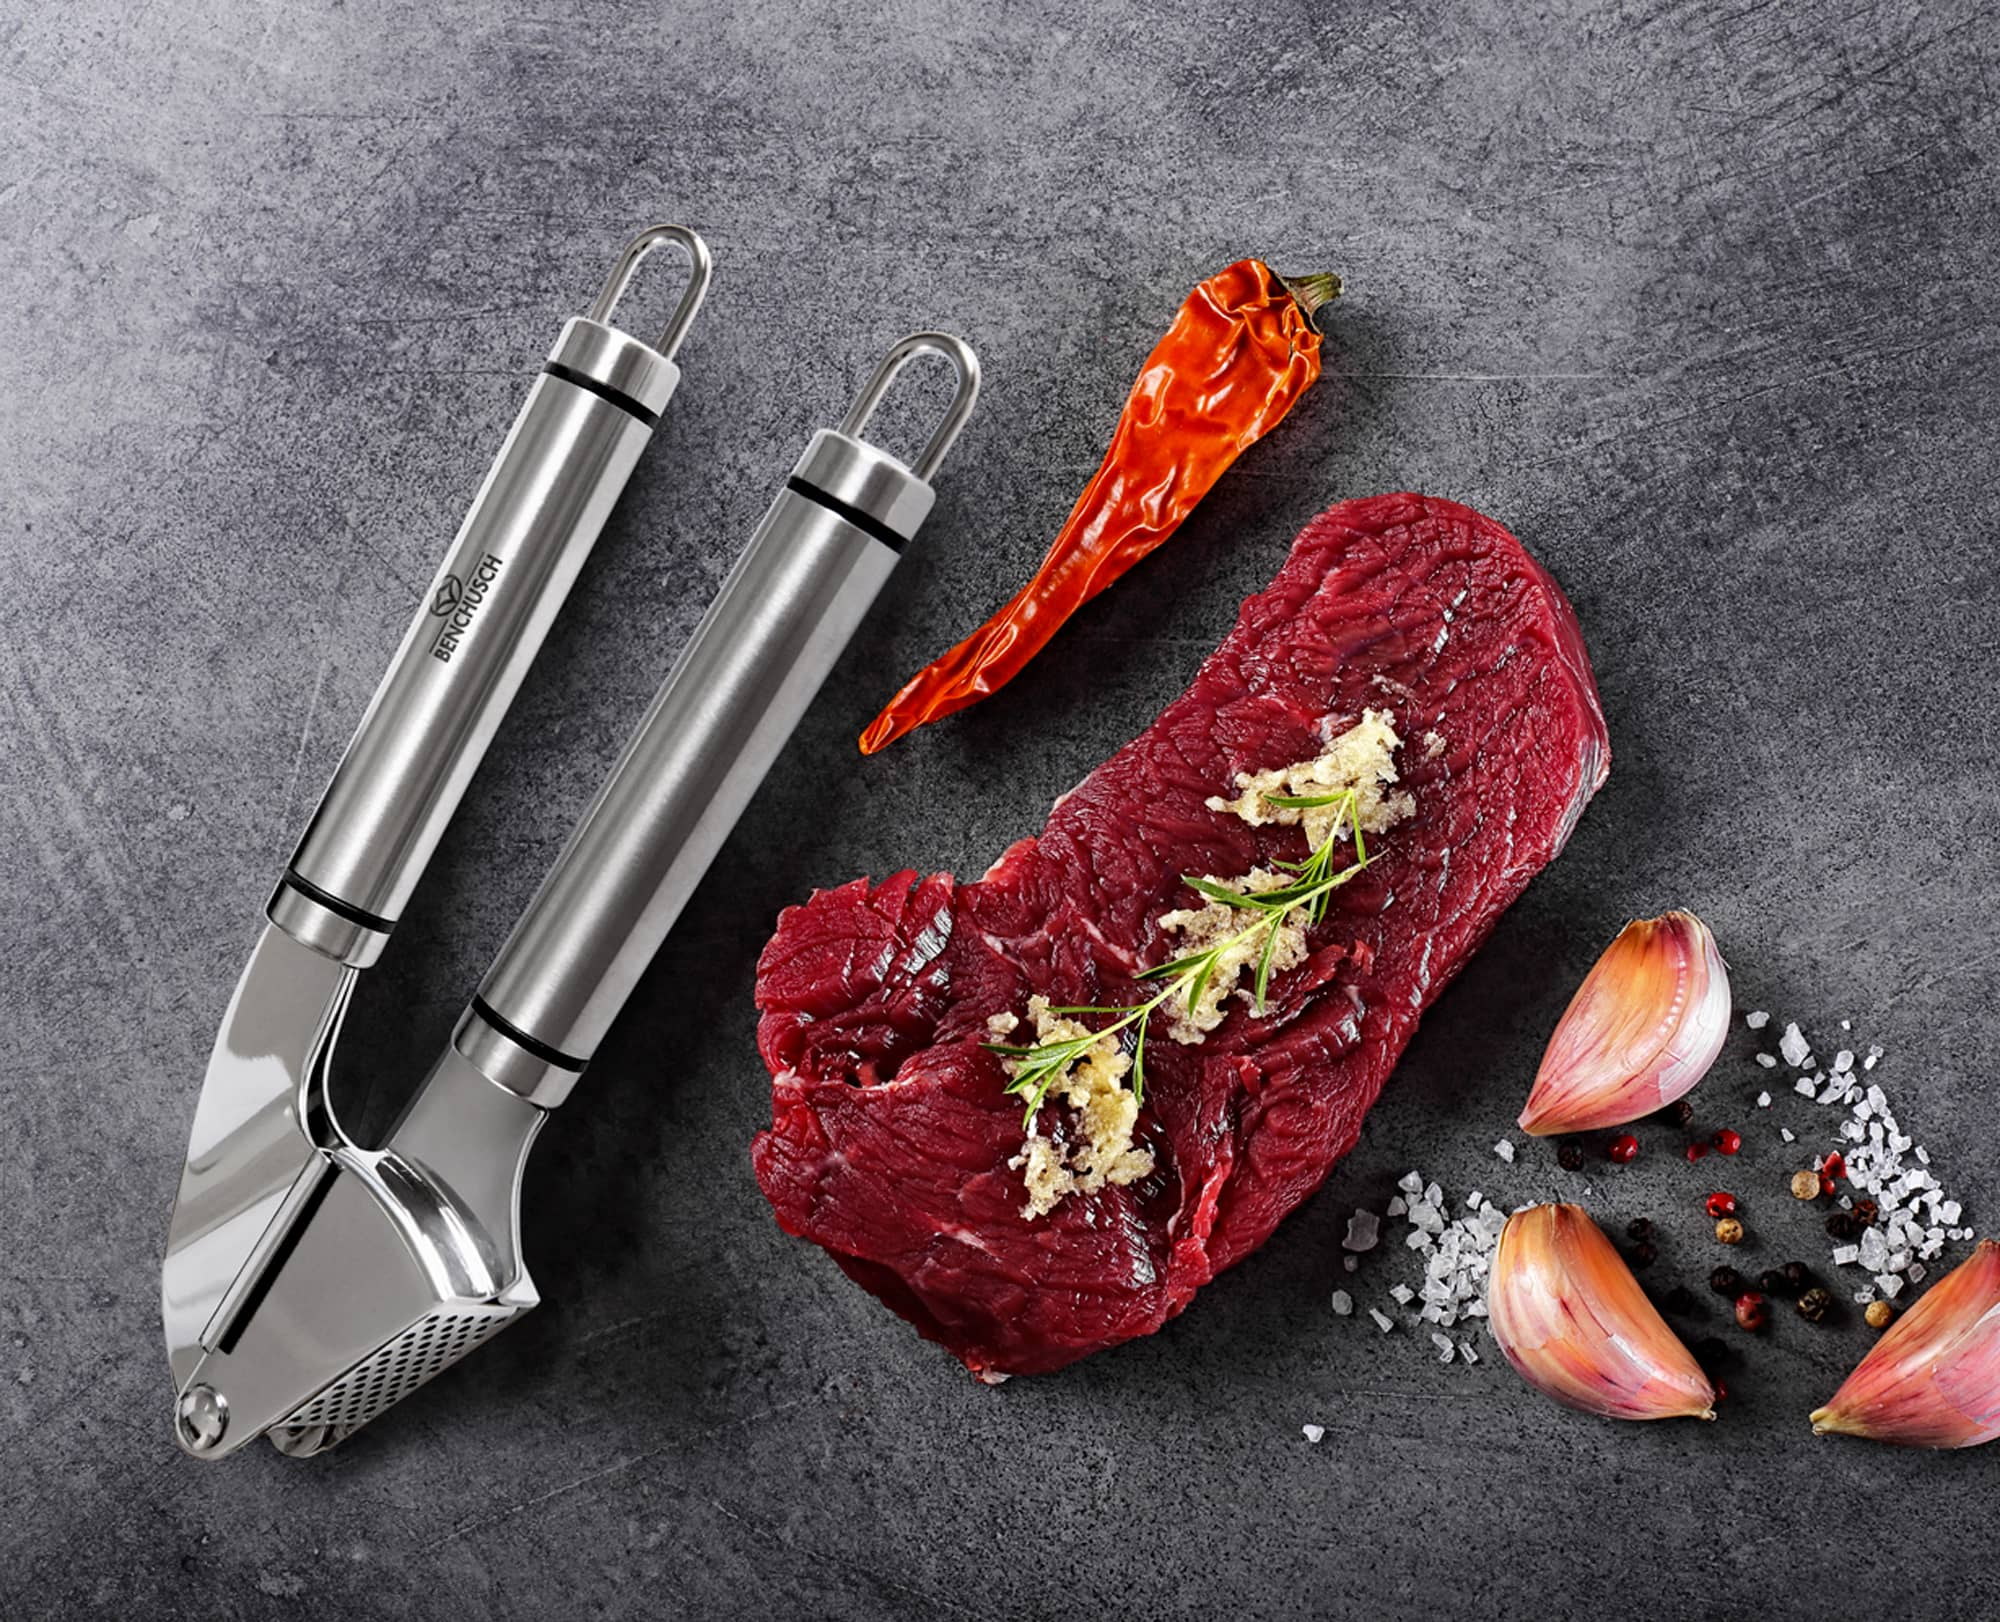 Benchusch garlic press with Beef meat, pepper and minced garlic on the dark background